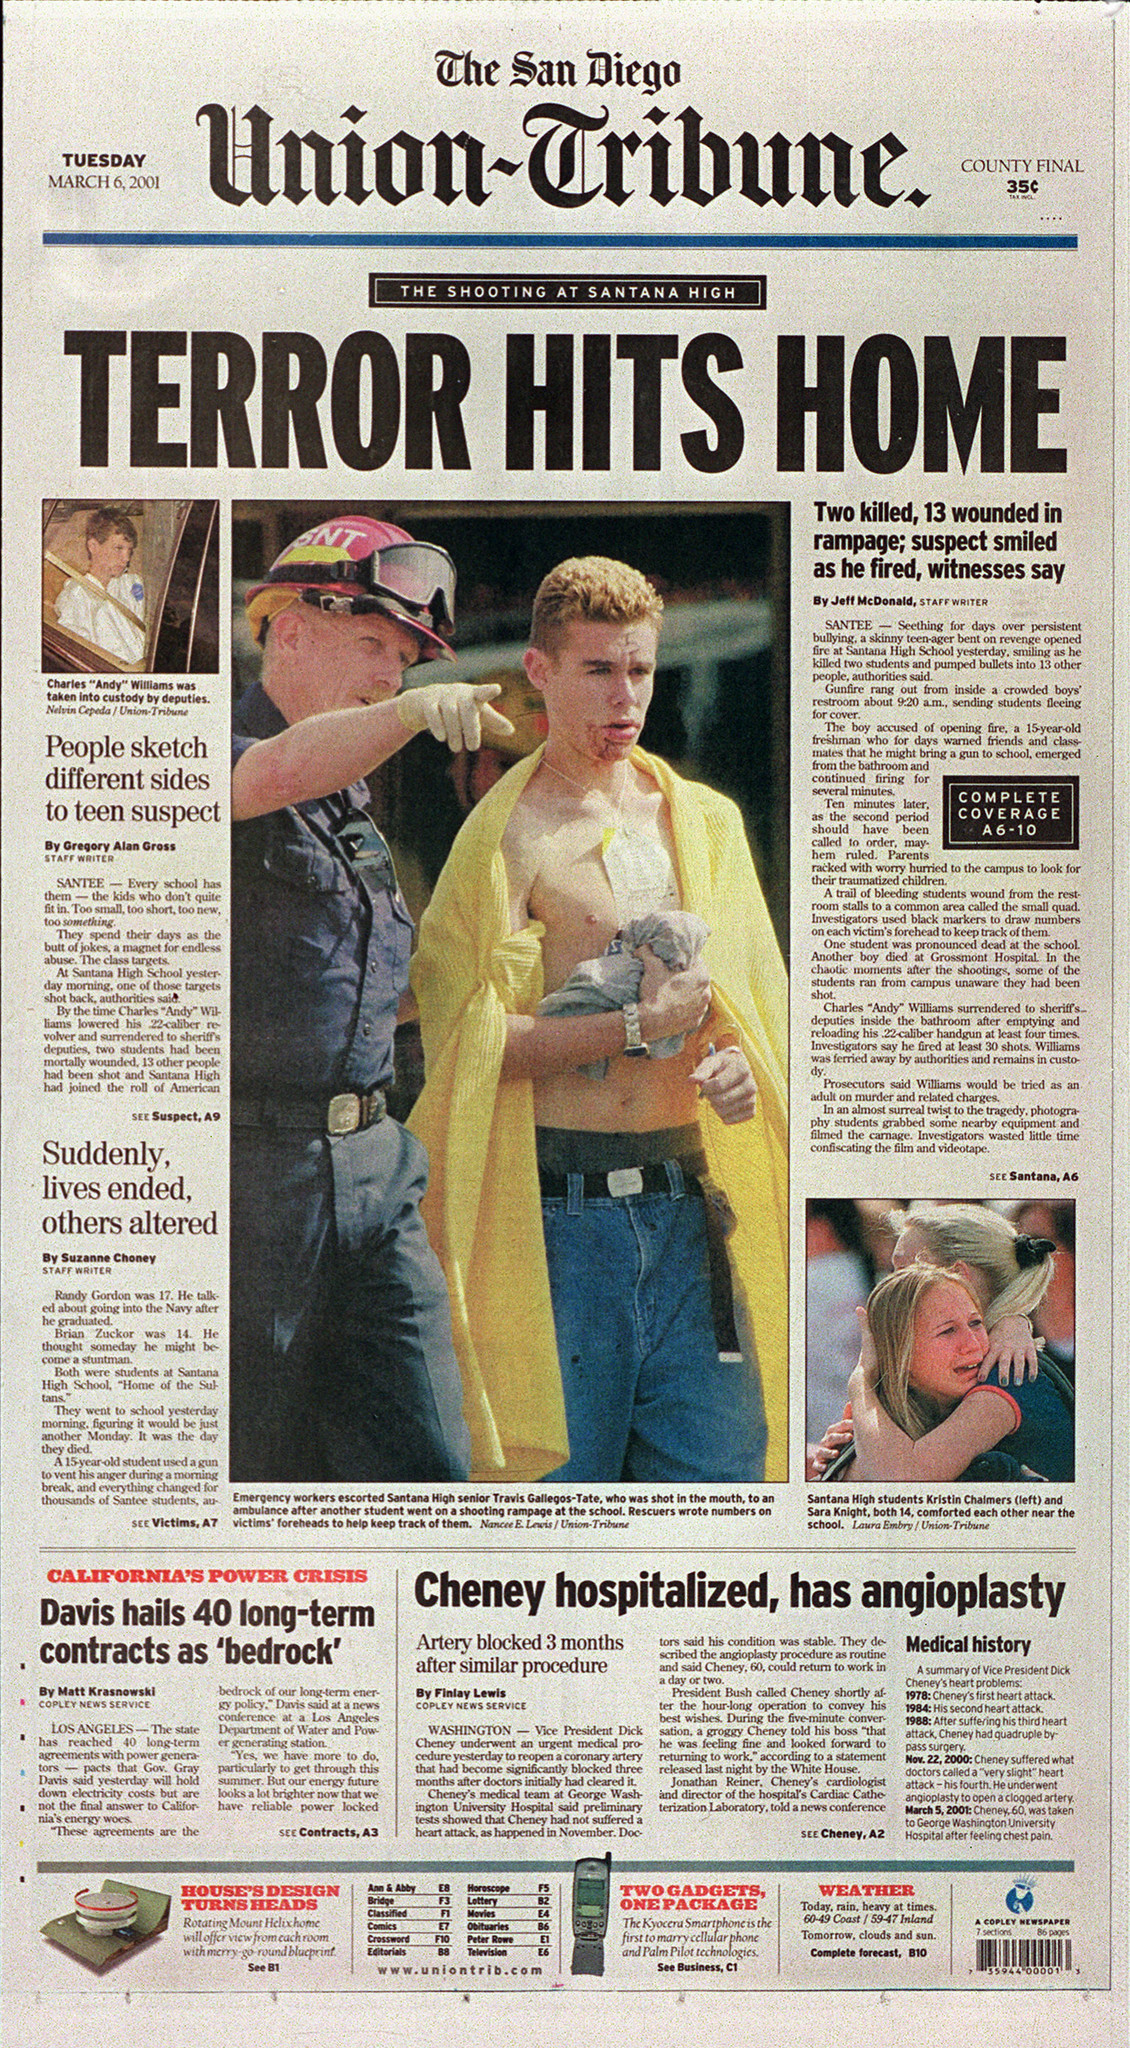 March 6, 2001